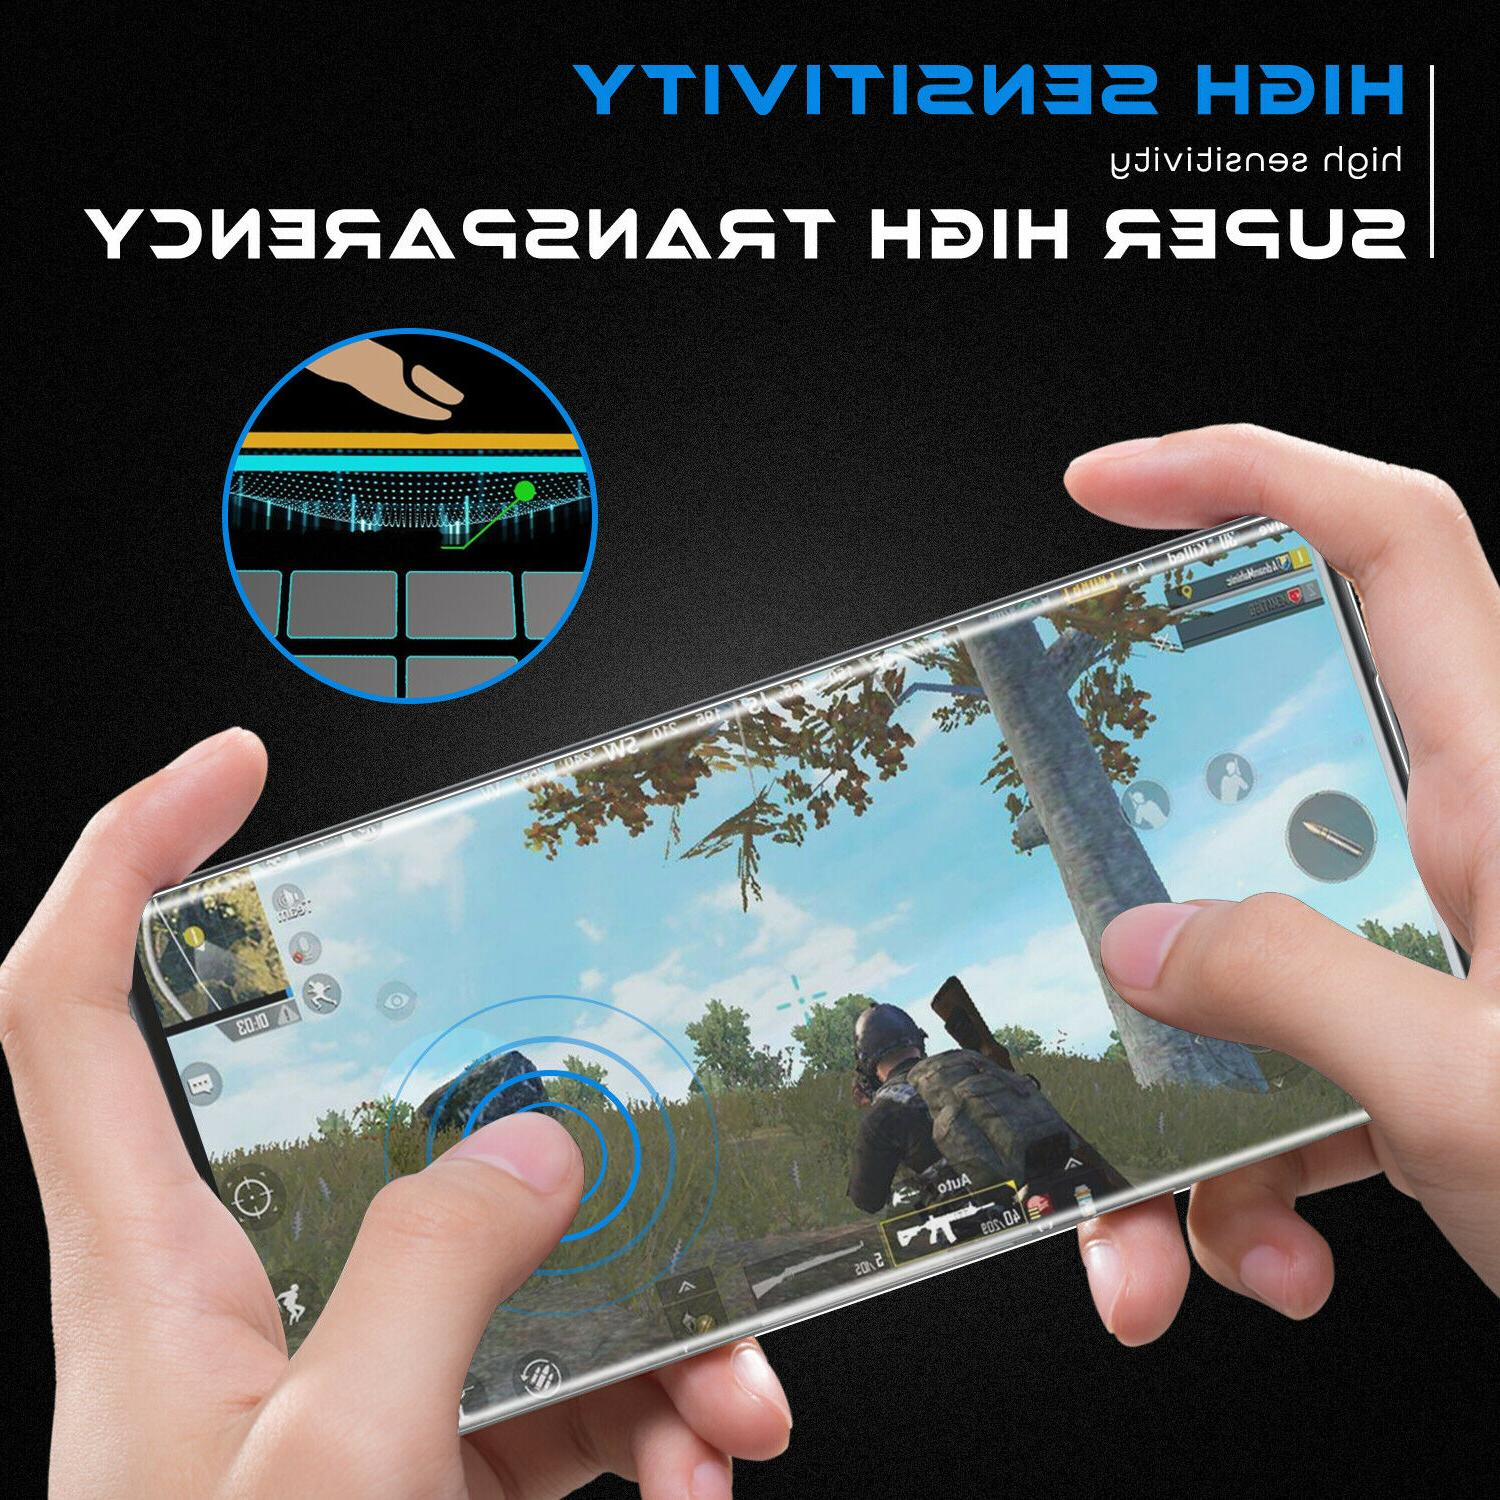 For Samsung Note20/20 Ultra/S20 Glass Camera/Screen